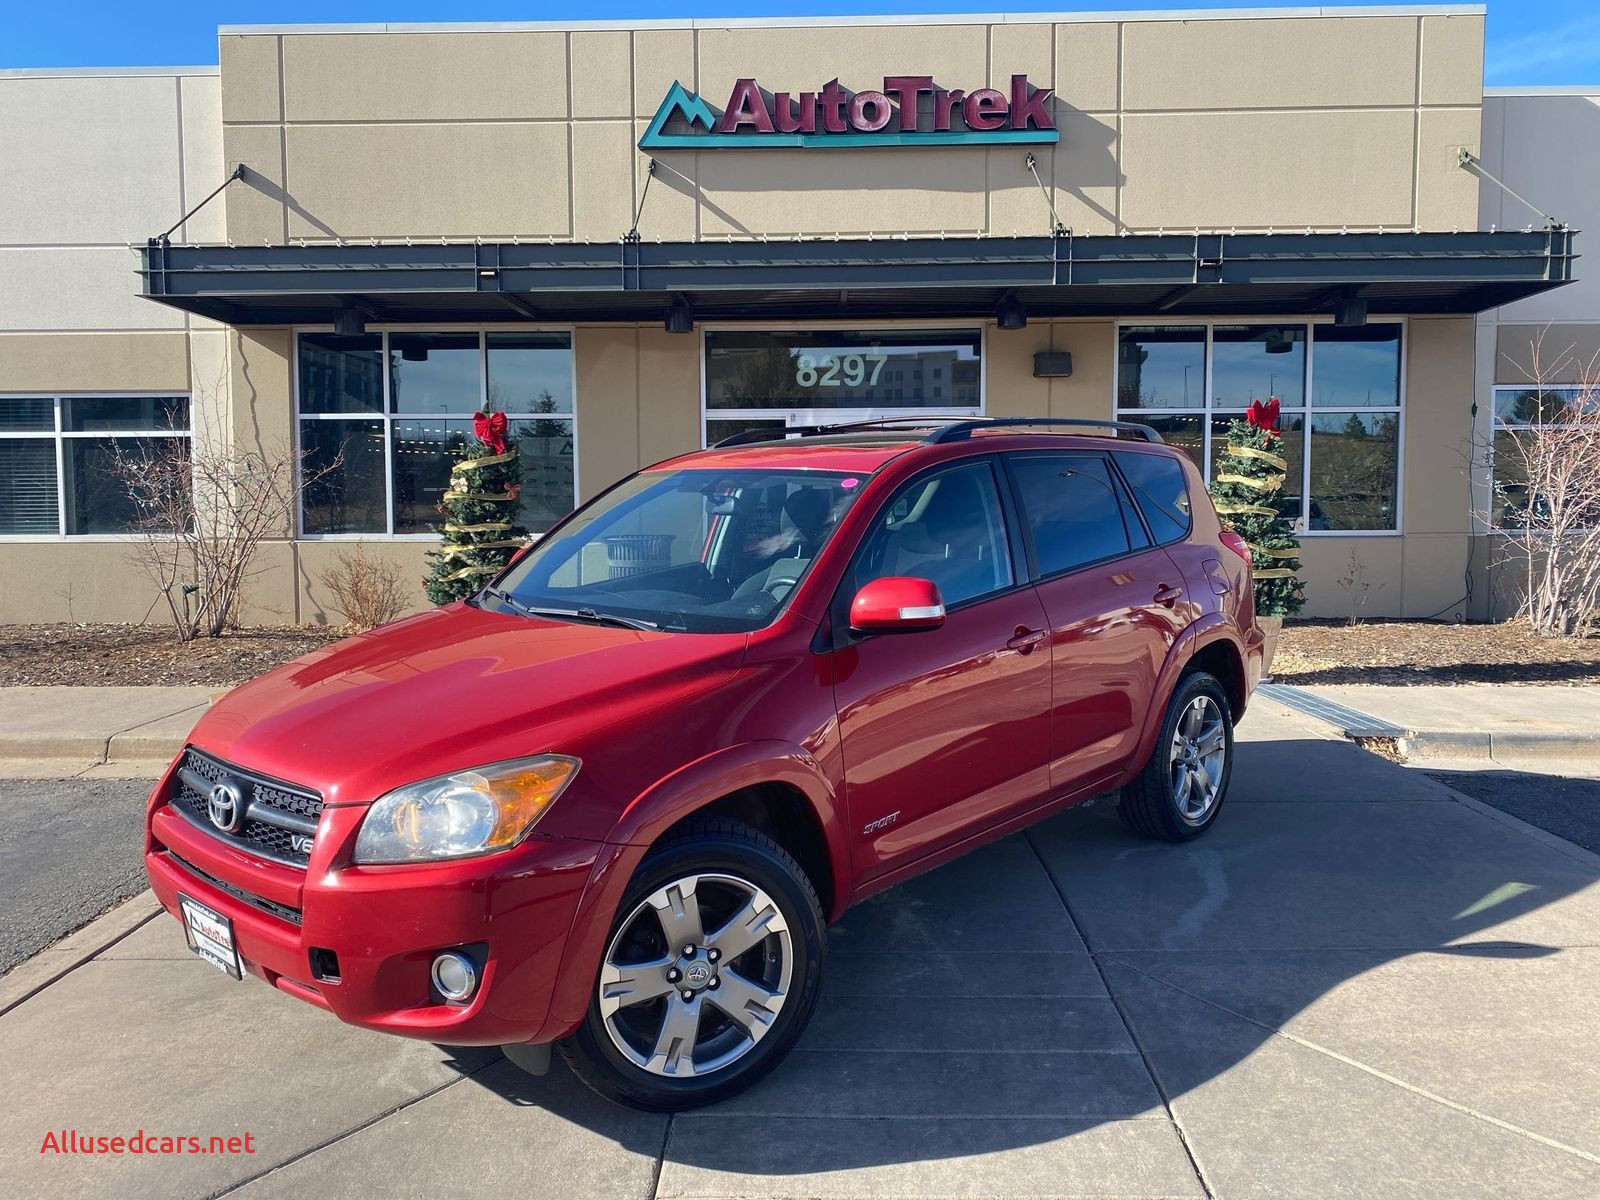 Lafayette In Used Cars for Sale Lovely 2010 toyota Rav4 Sport Autotrek